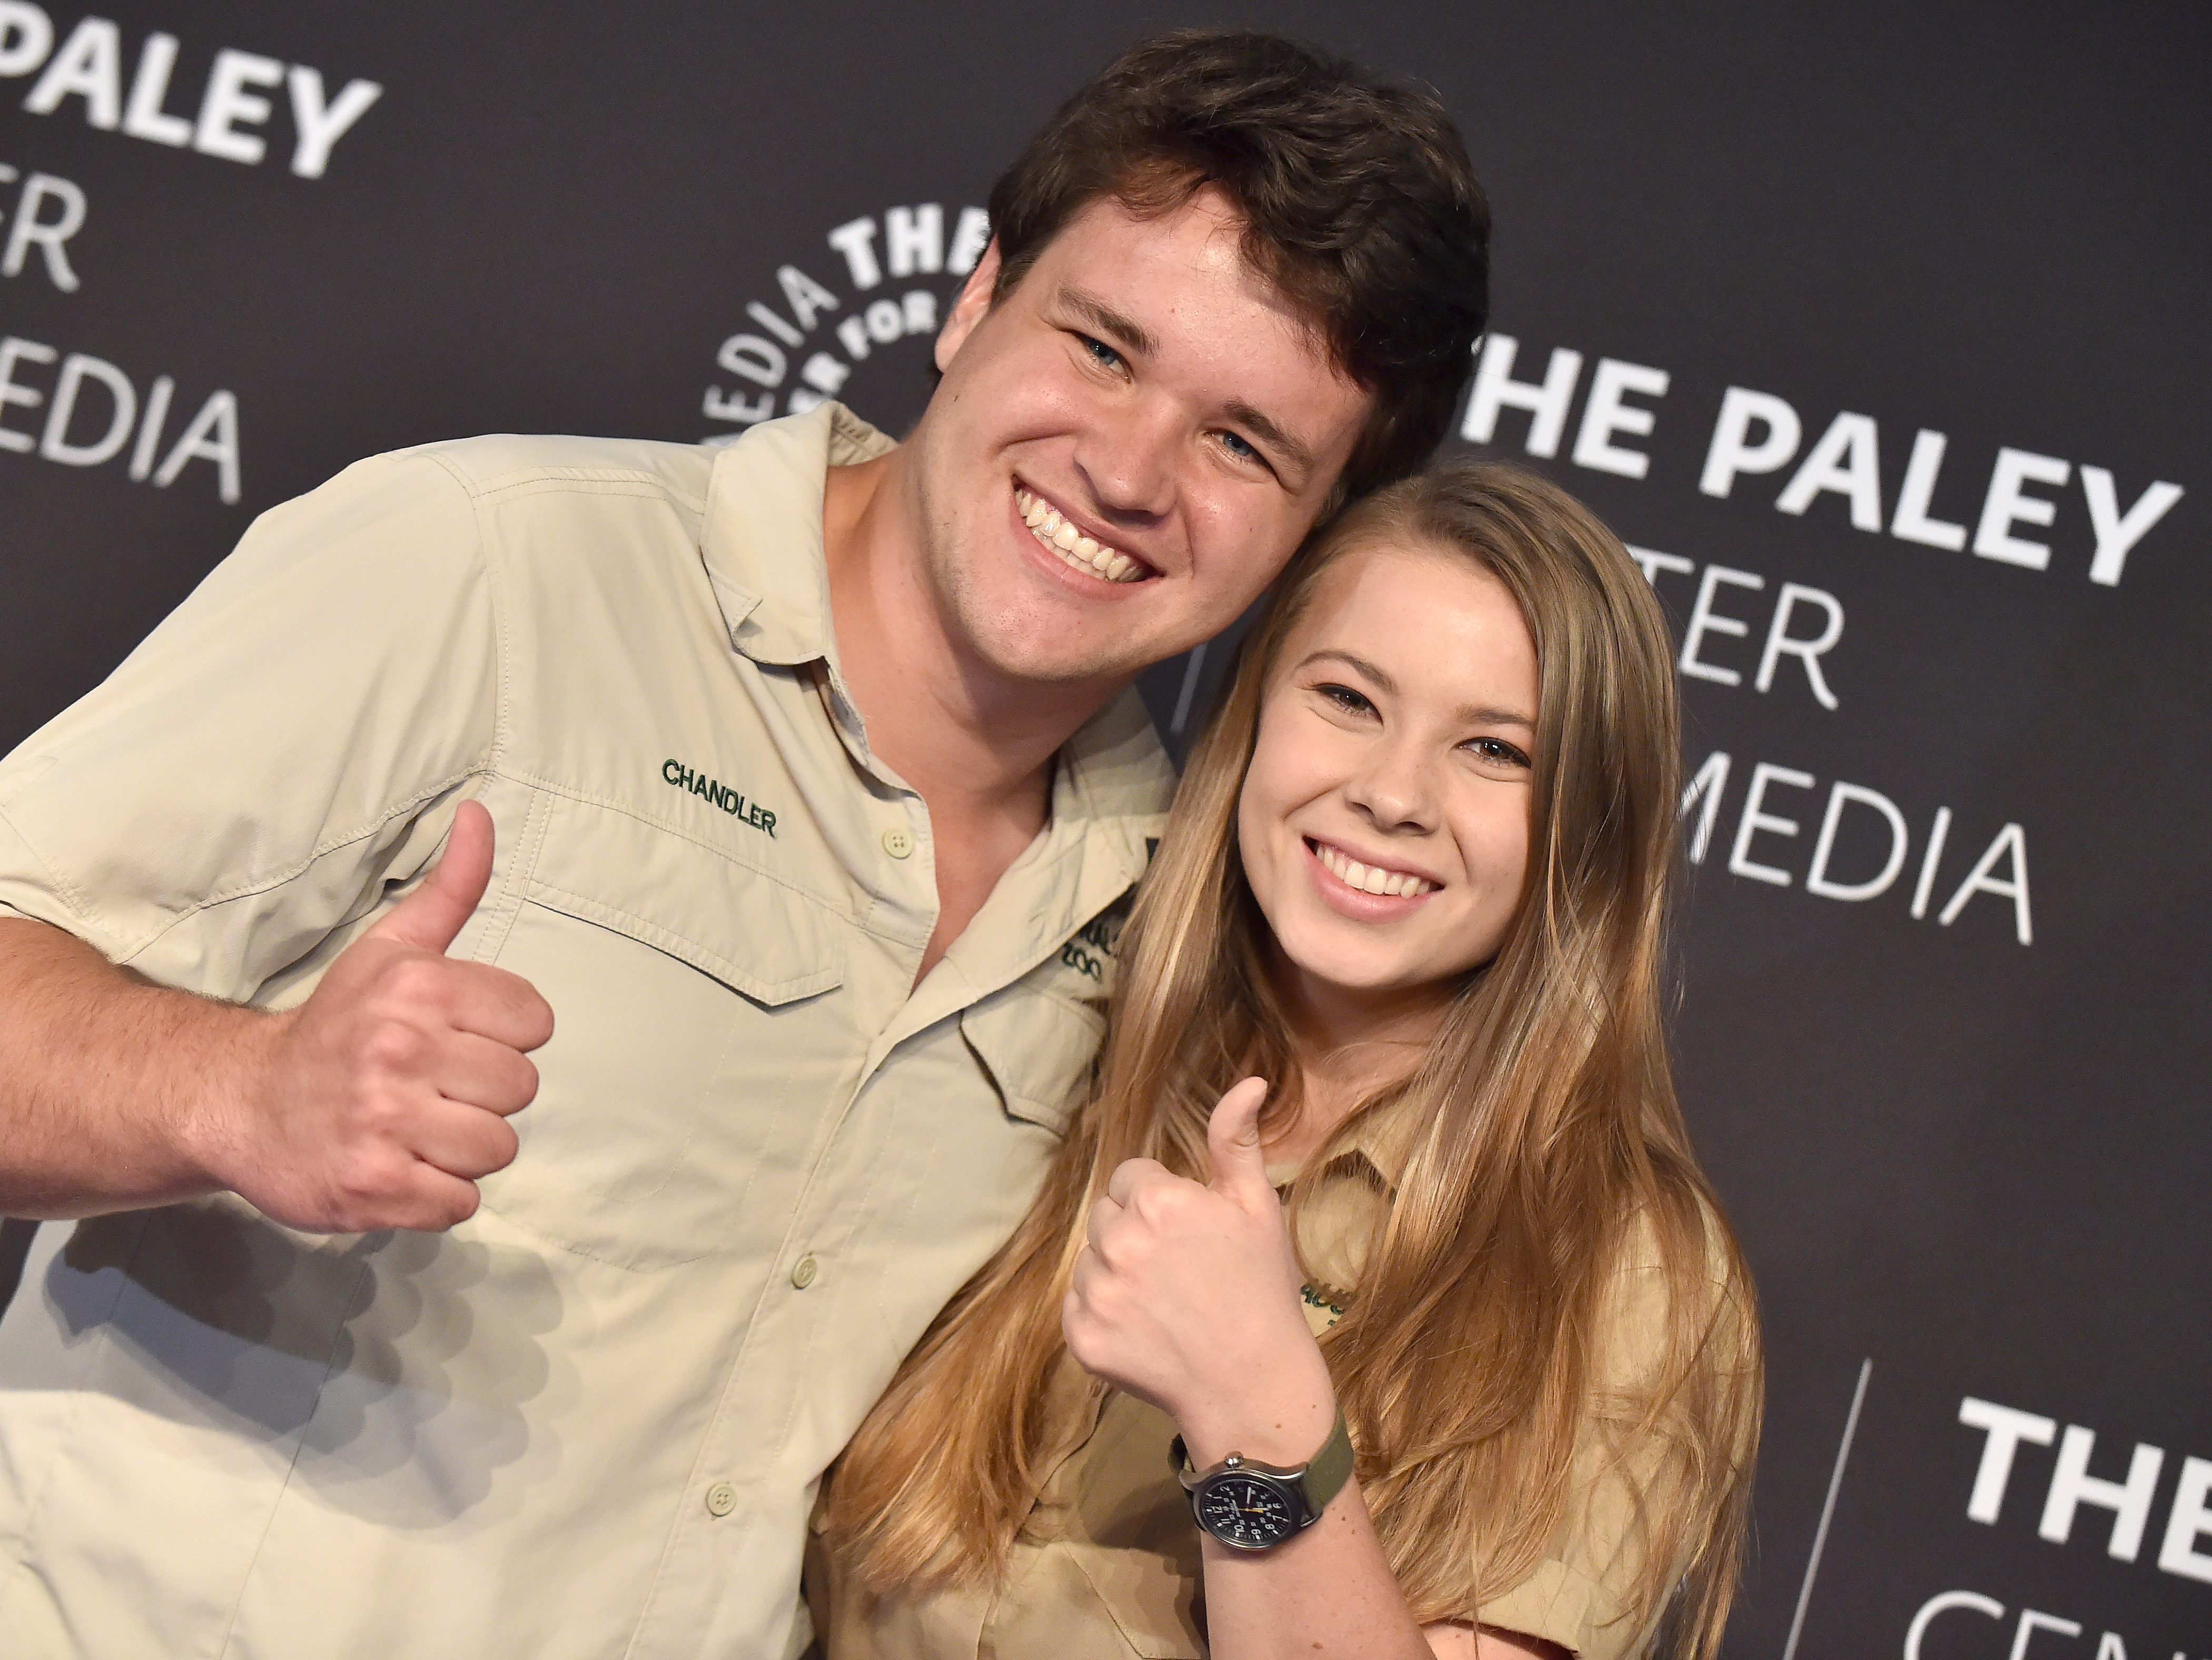 """Chandler Powell and Bindi Irwin attend The Paley Center for Media's """"An Evening with the Irwins: Crikey!"""" in Los Angeles on May 3, 2019."""